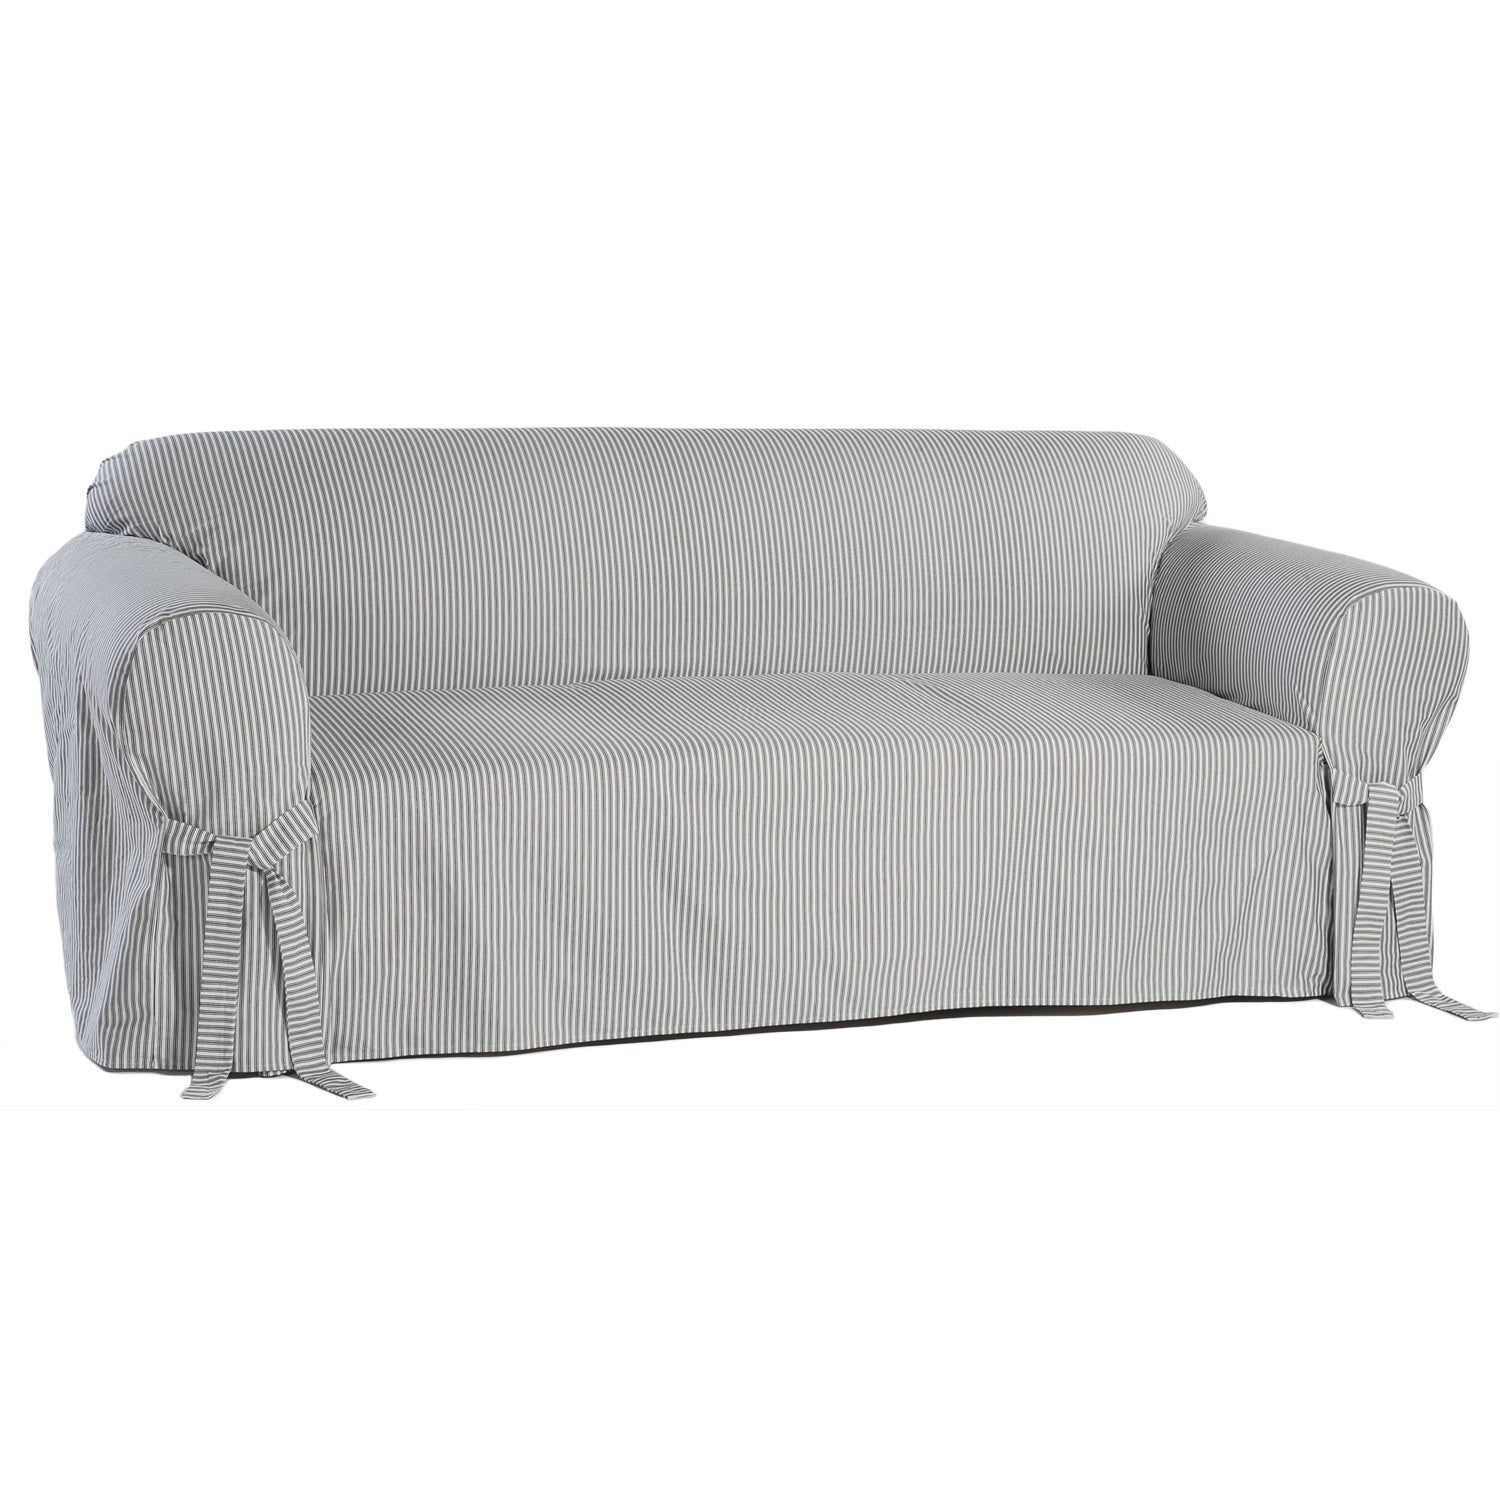 Classic Slipcovers Brushed Twill Sofa Slipcover Free Shipping  ~ White Slipcovers For Sofa